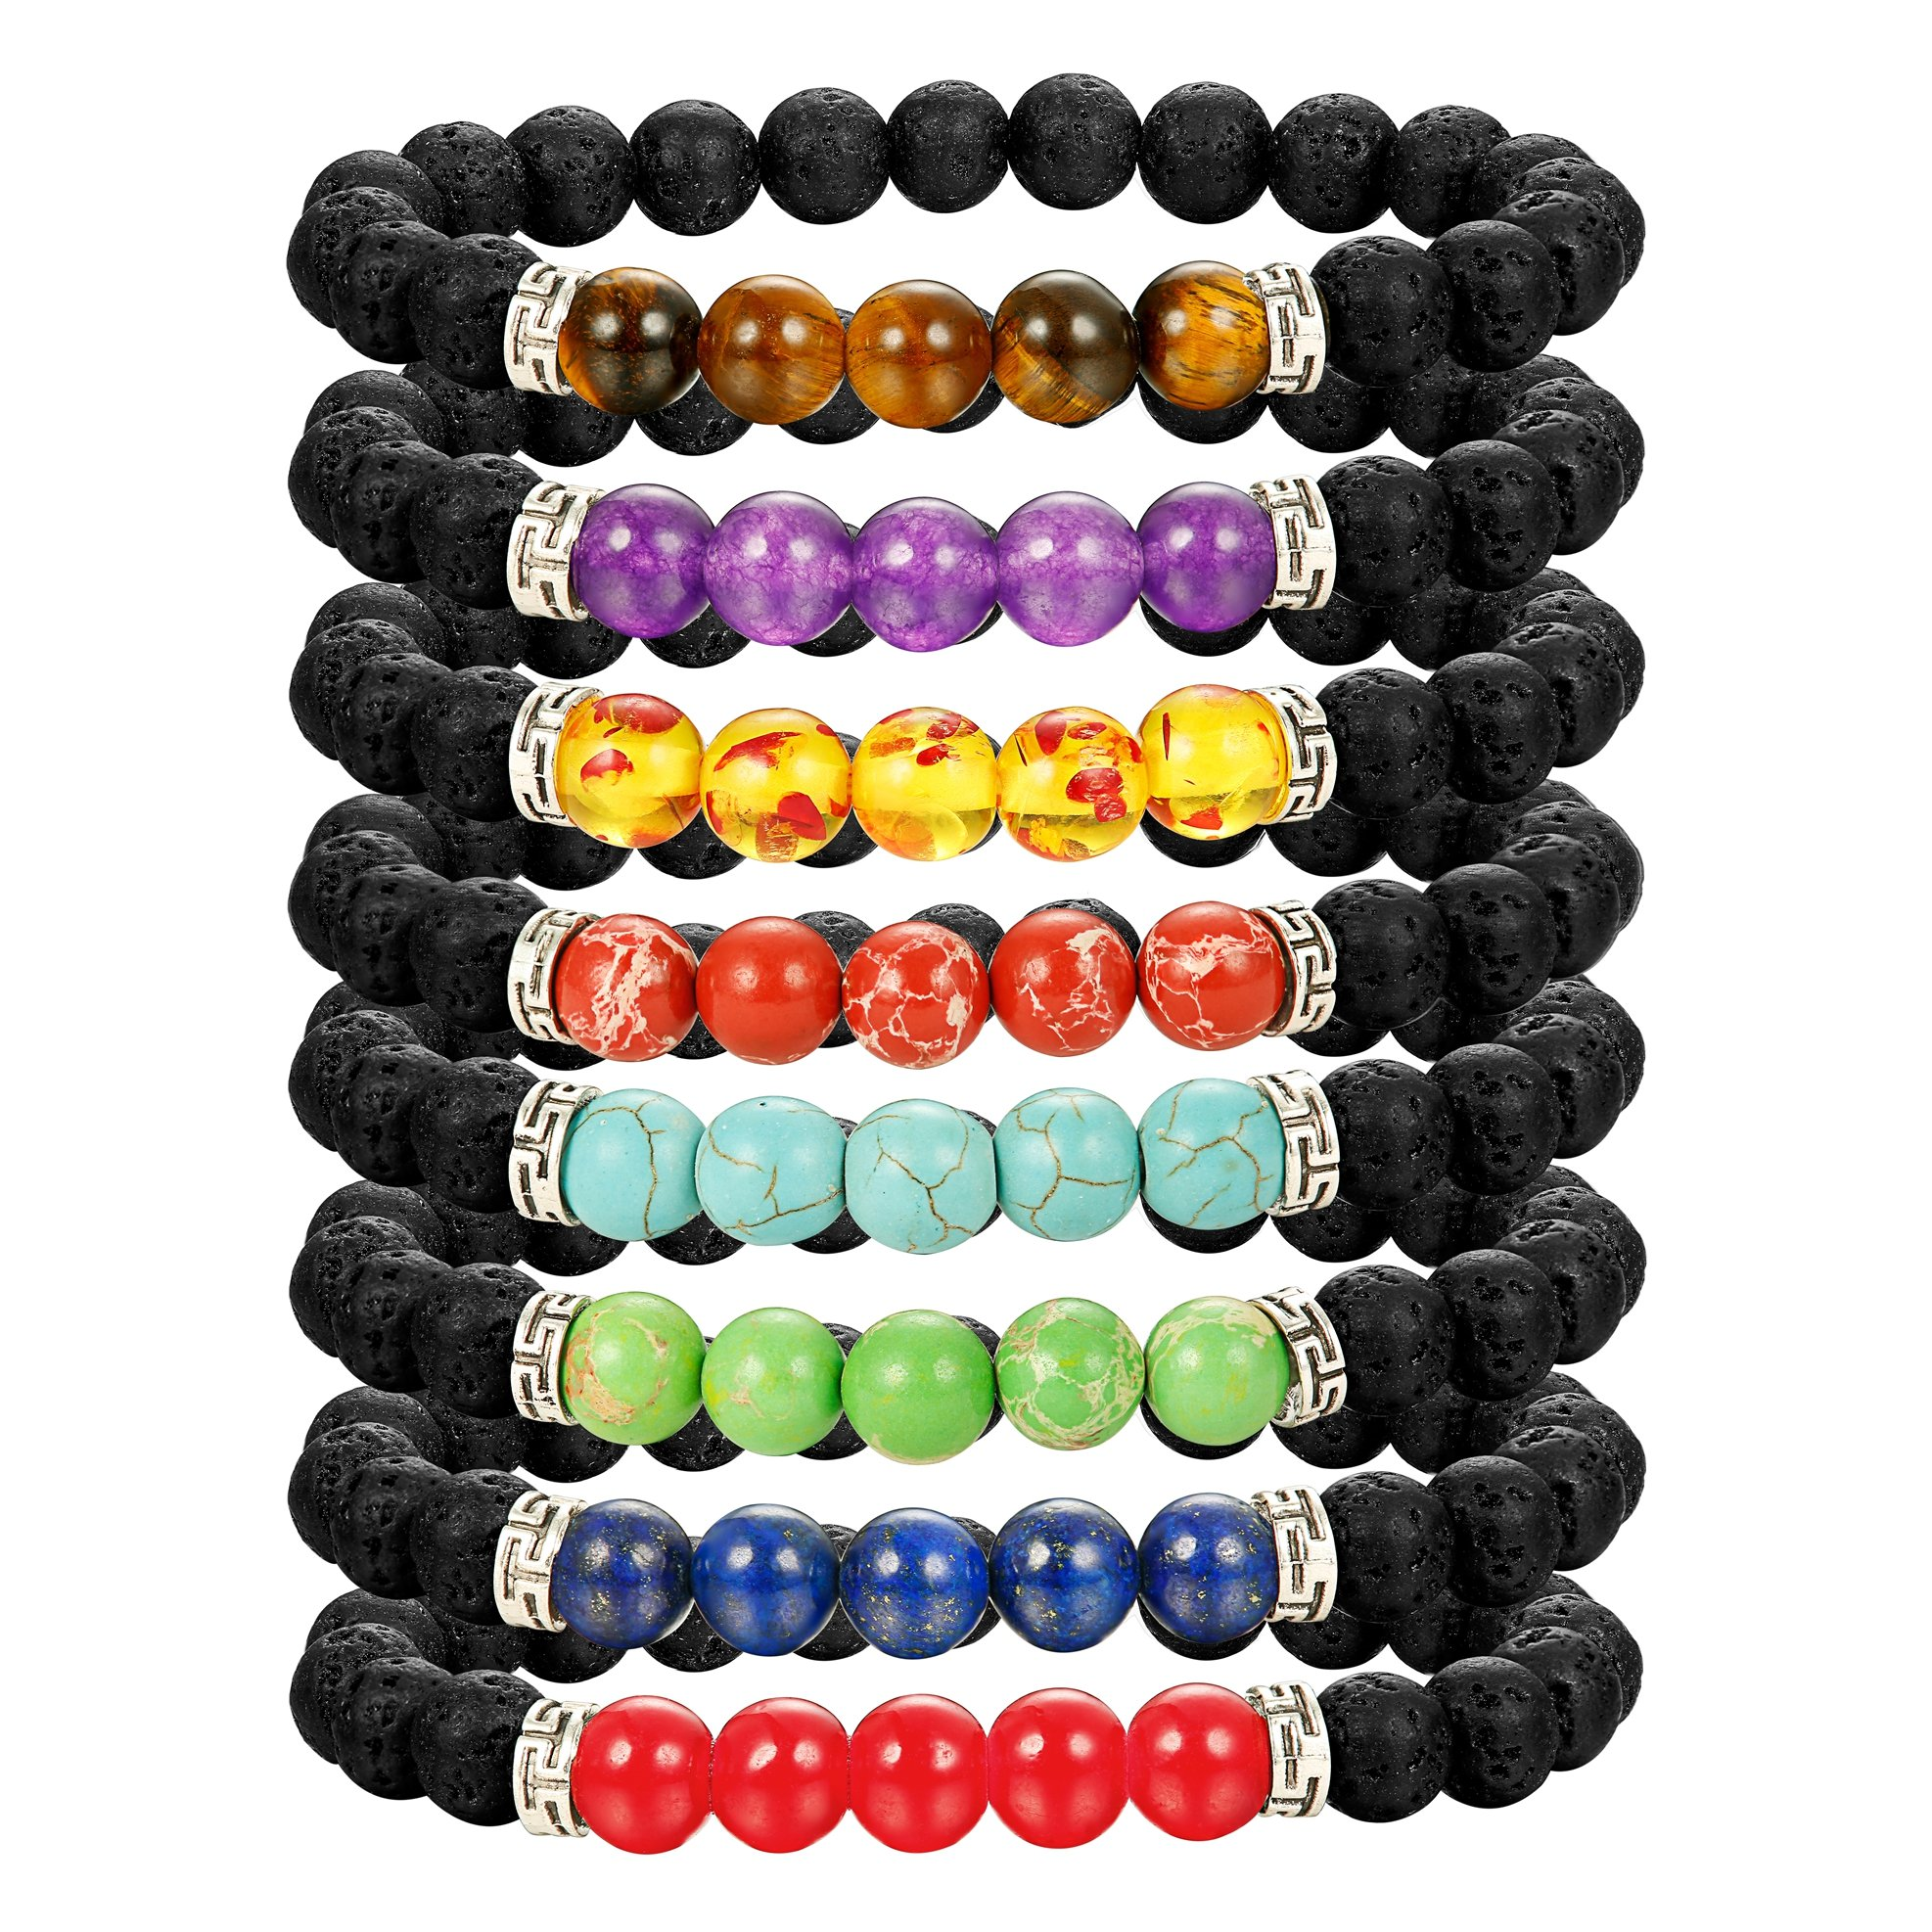 LOLIAS Chakras Bracelet 8 Pack Bead Gemstone Bracelet for Men Women Natural Stone Diffuser Bracelet Stretch Yoga Bracelets